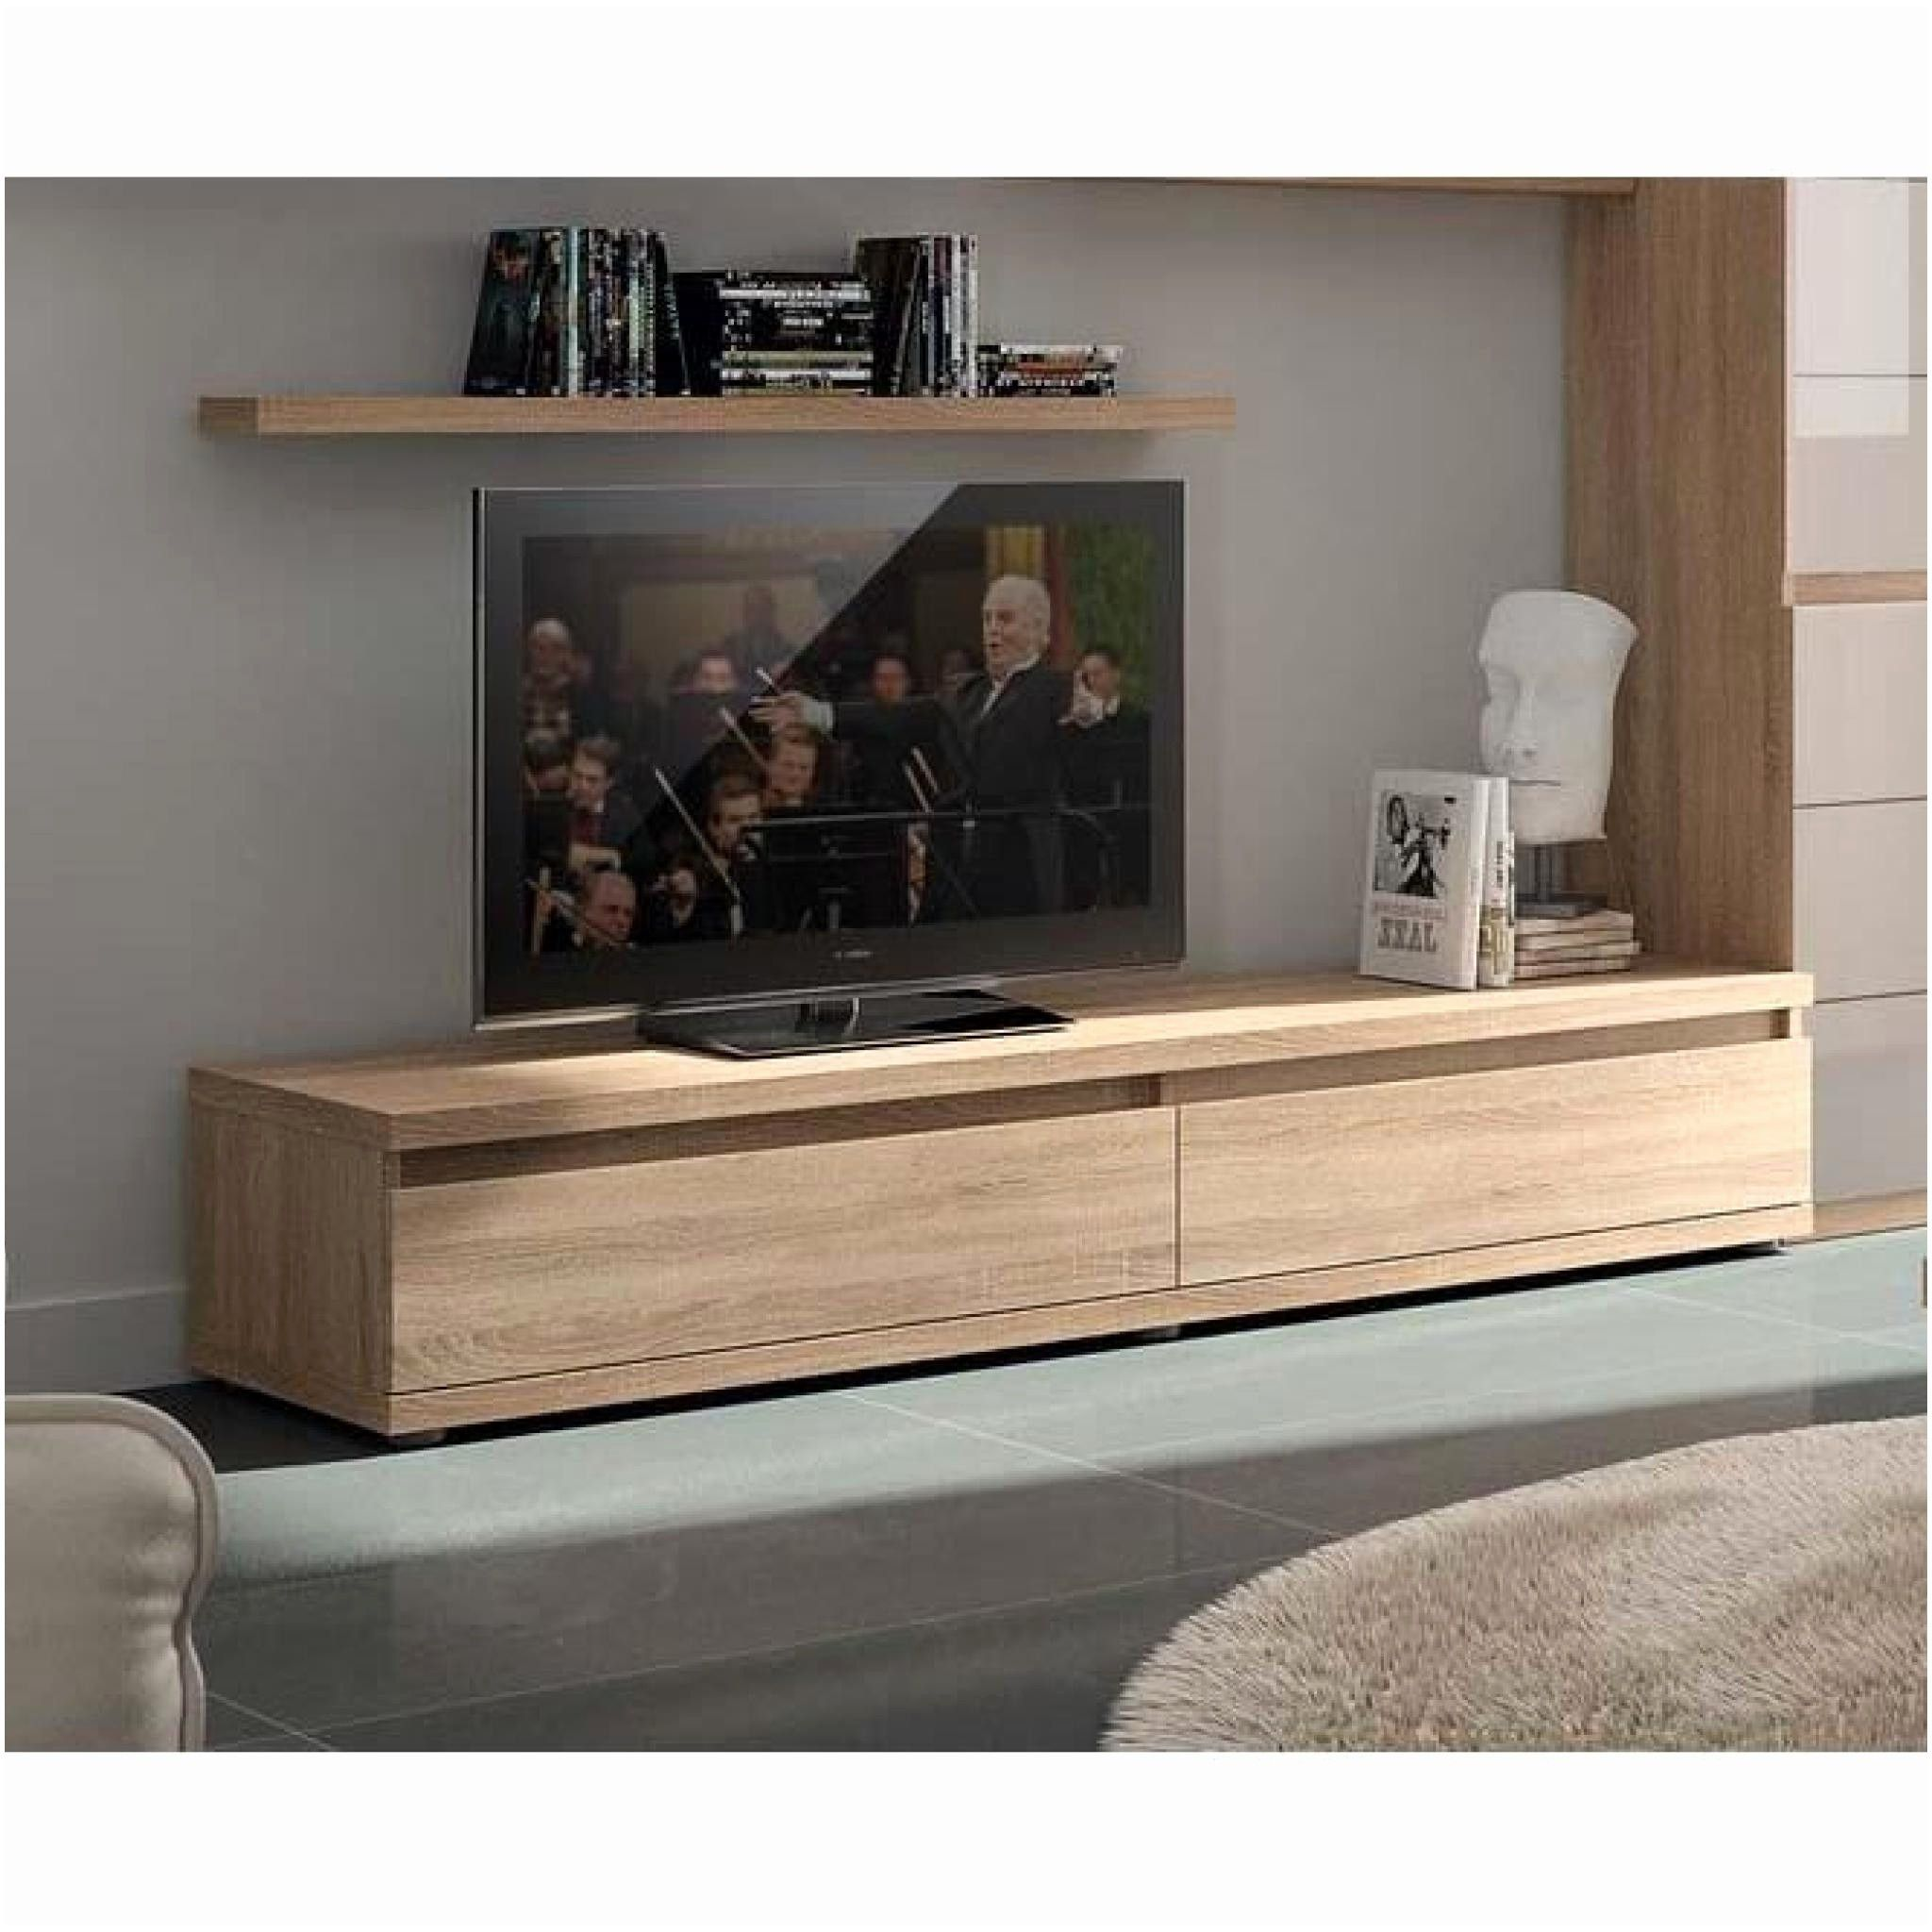 New Meuble Tv Boulanger Home Decor Home Decor Inspiration Home